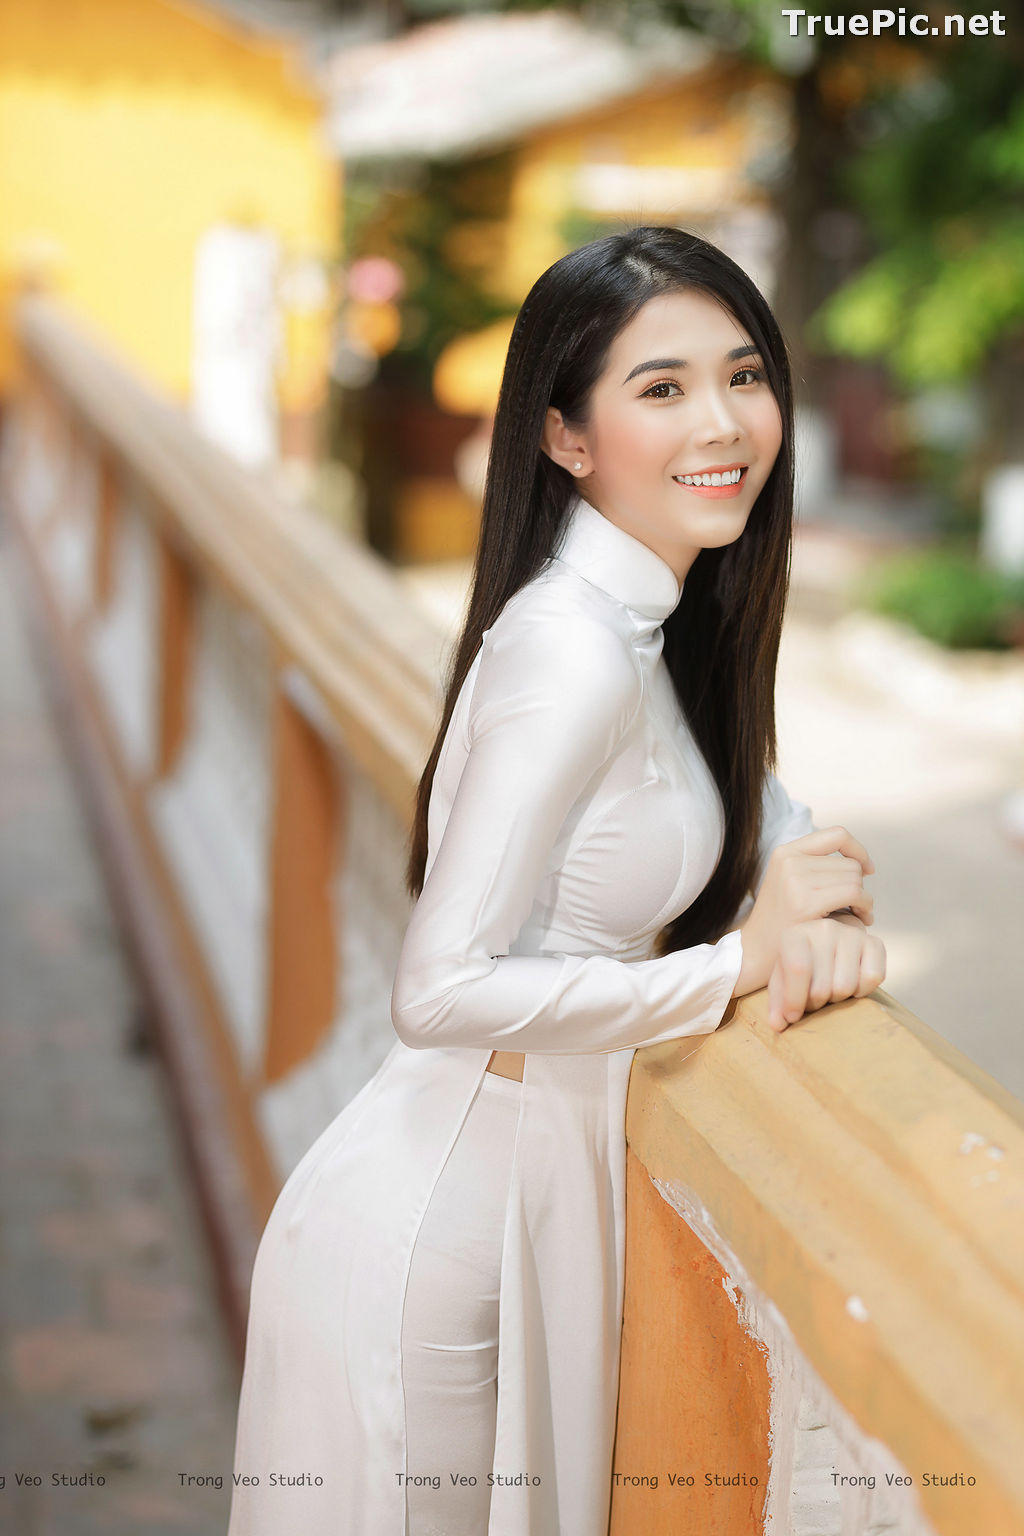 Image The Beauty of Vietnamese Girls with Traditional Dress (Ao Dai) #2 - TruePic.net - Picture-10